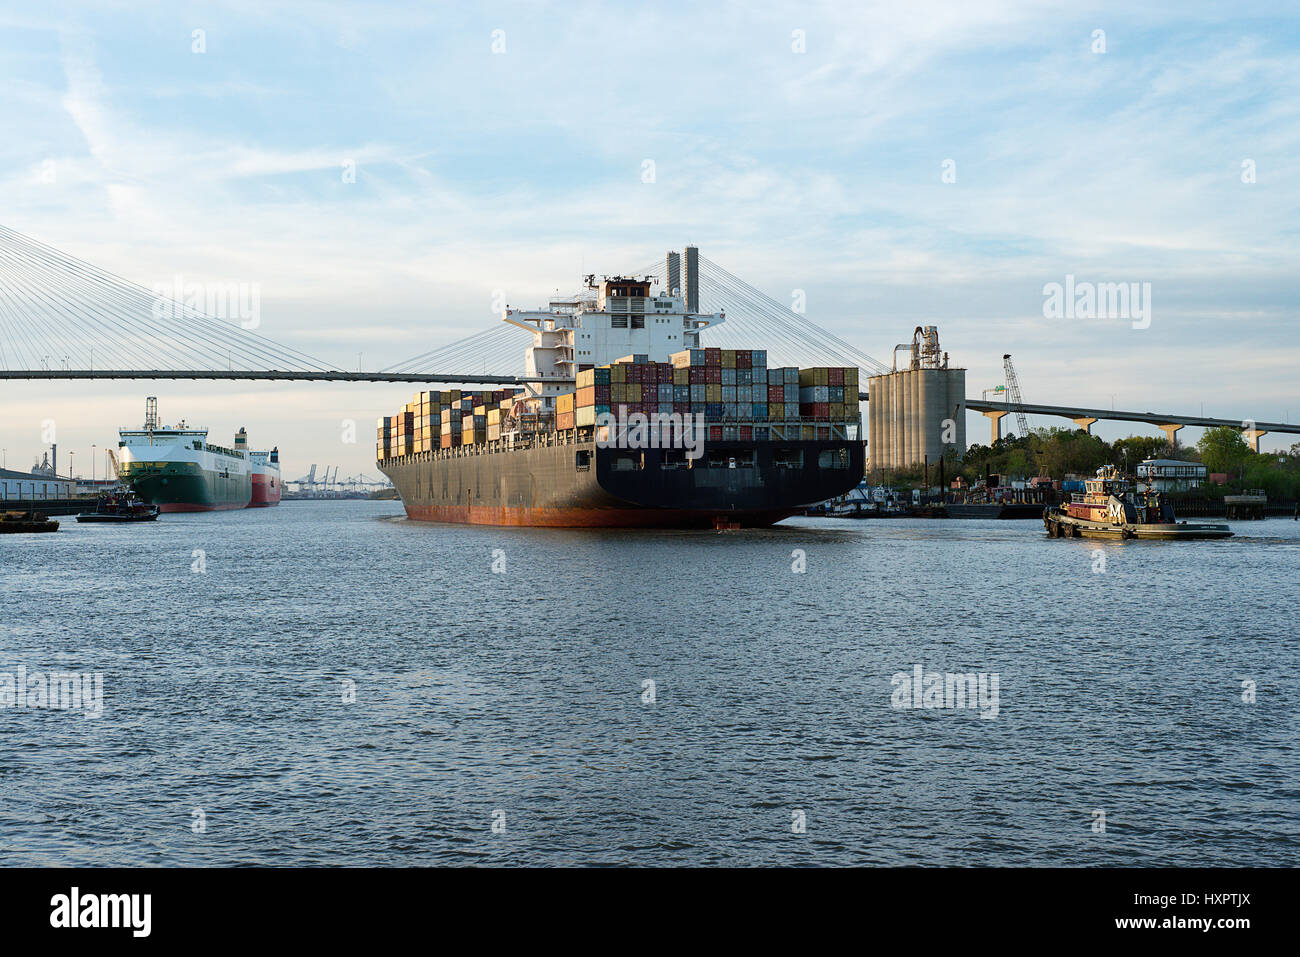 A container ship in Savannah Georgia with the Talmadge bridge in the background. - Stock Image